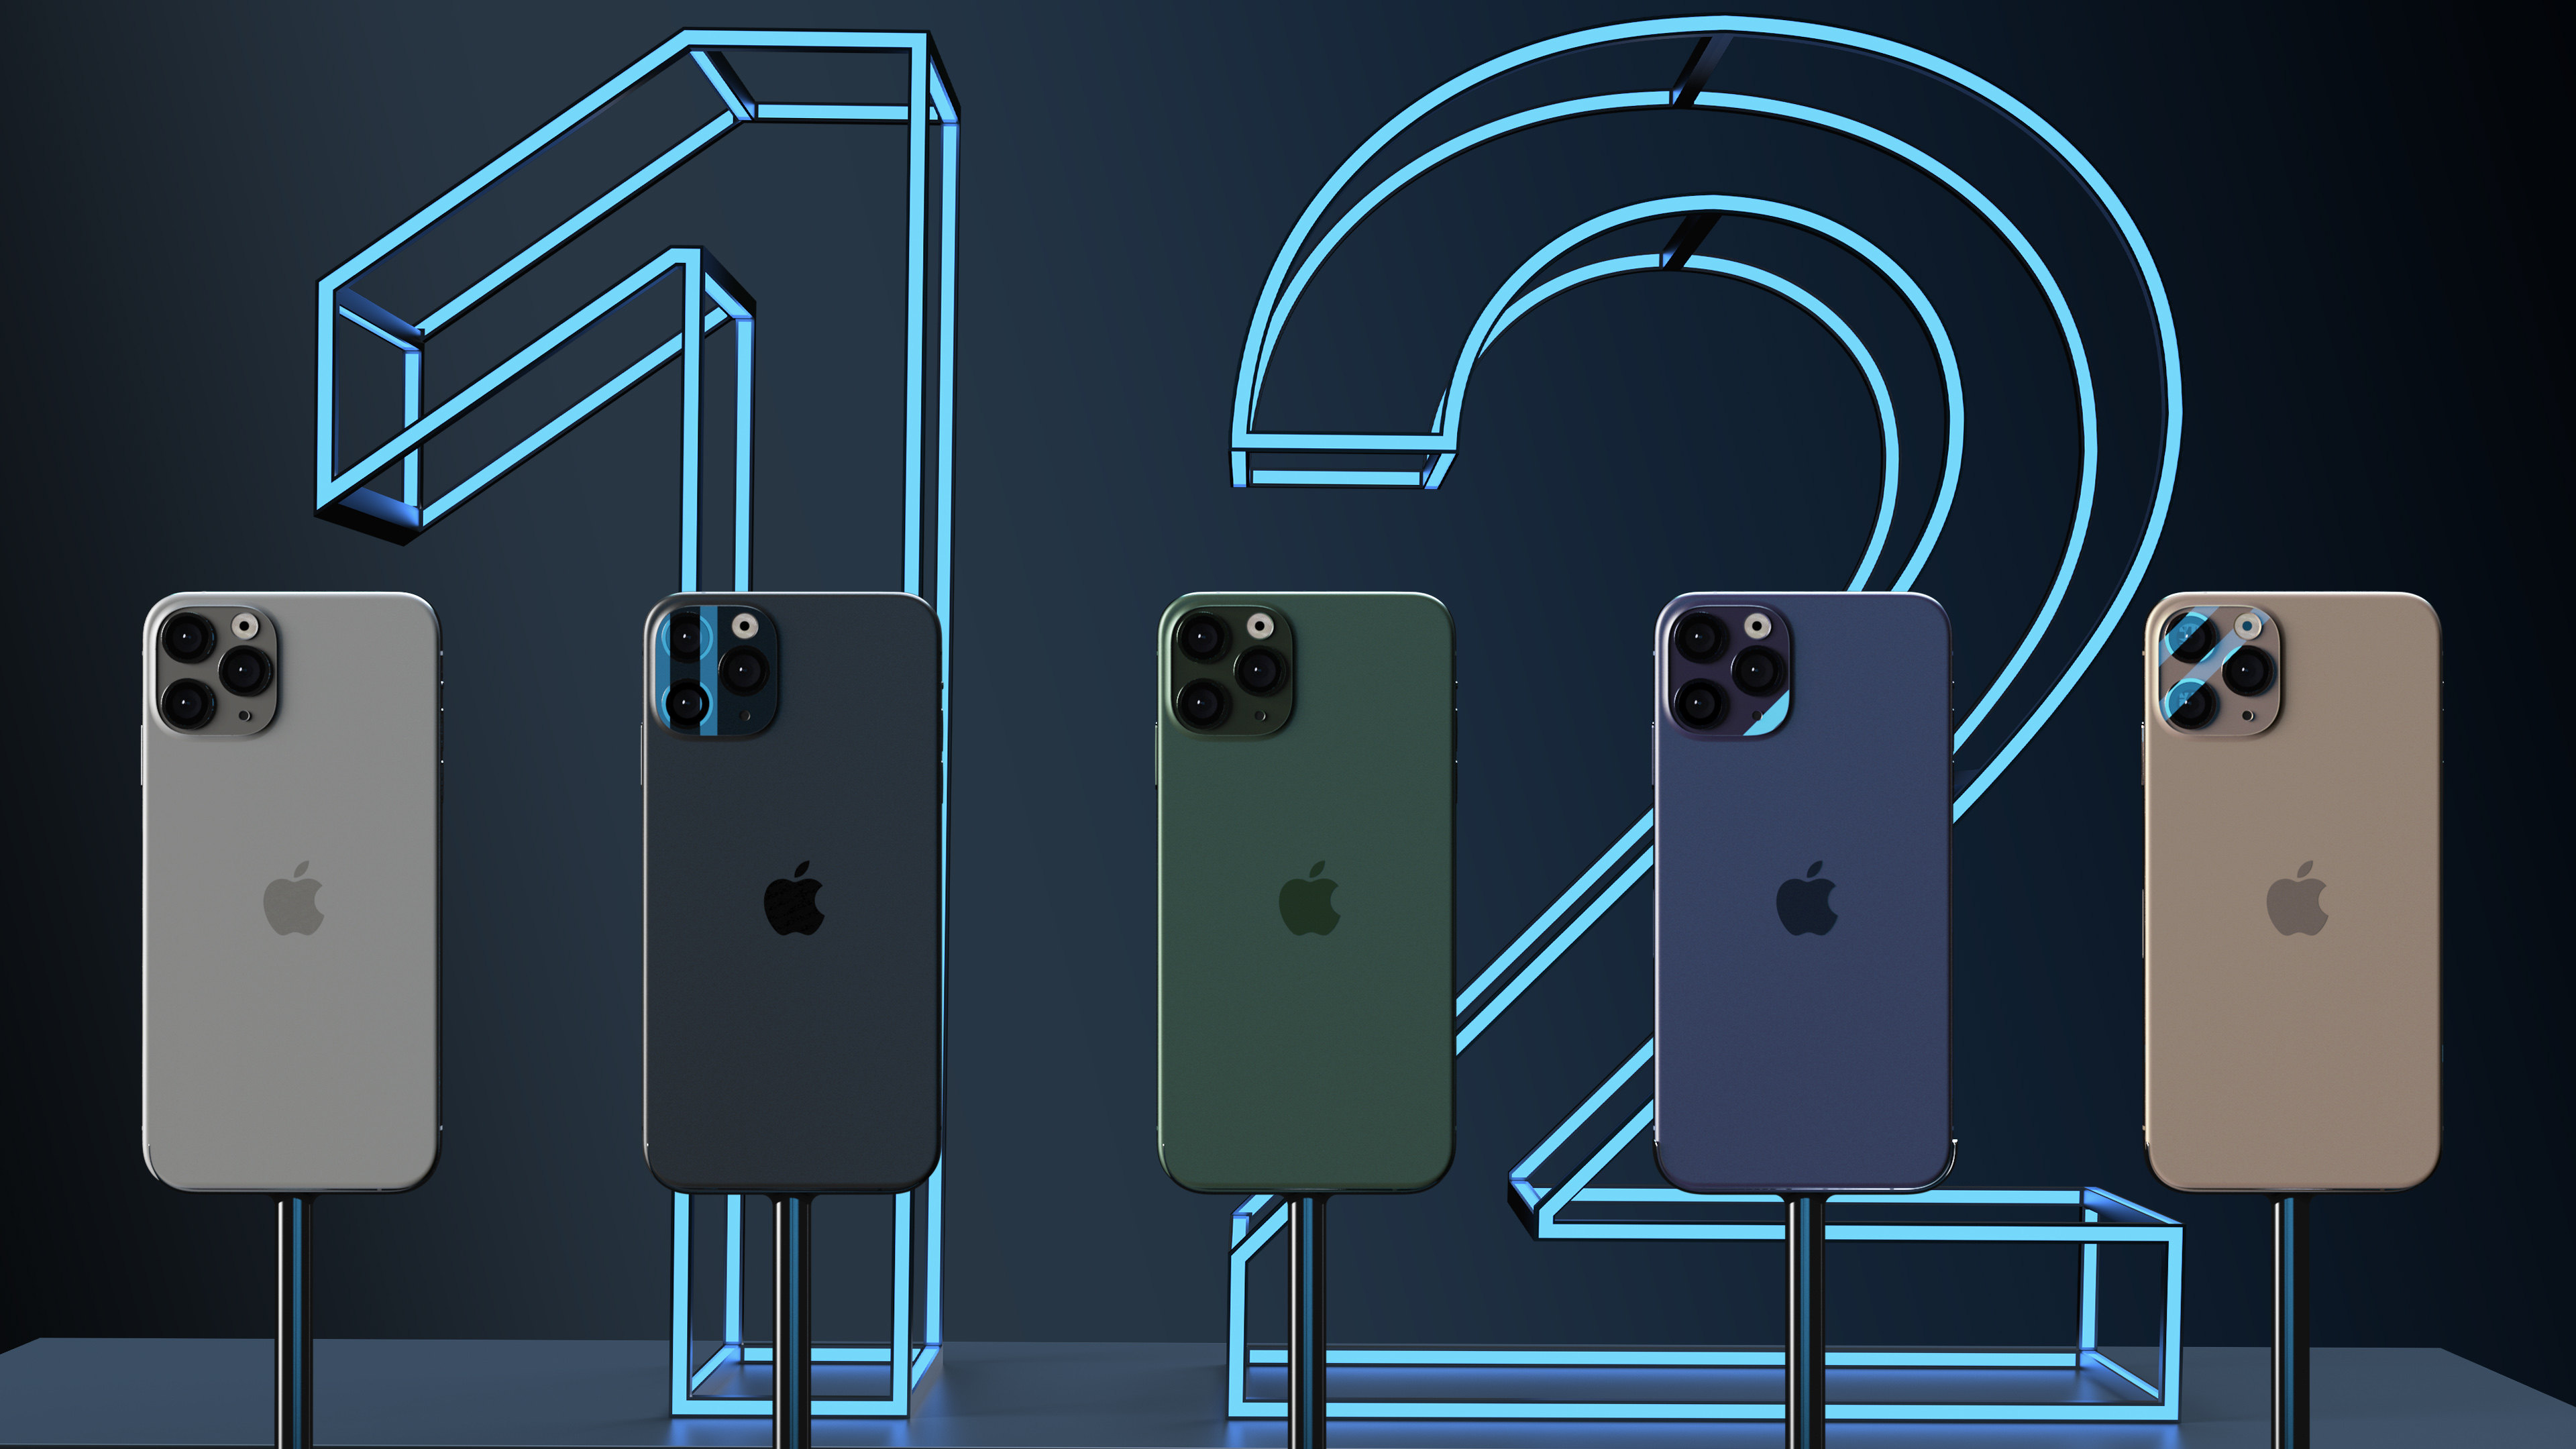 'iPhone 12 Pro' Models Could Be Capable of Shooting 4K Video at 120fps and 240fps thumbnail